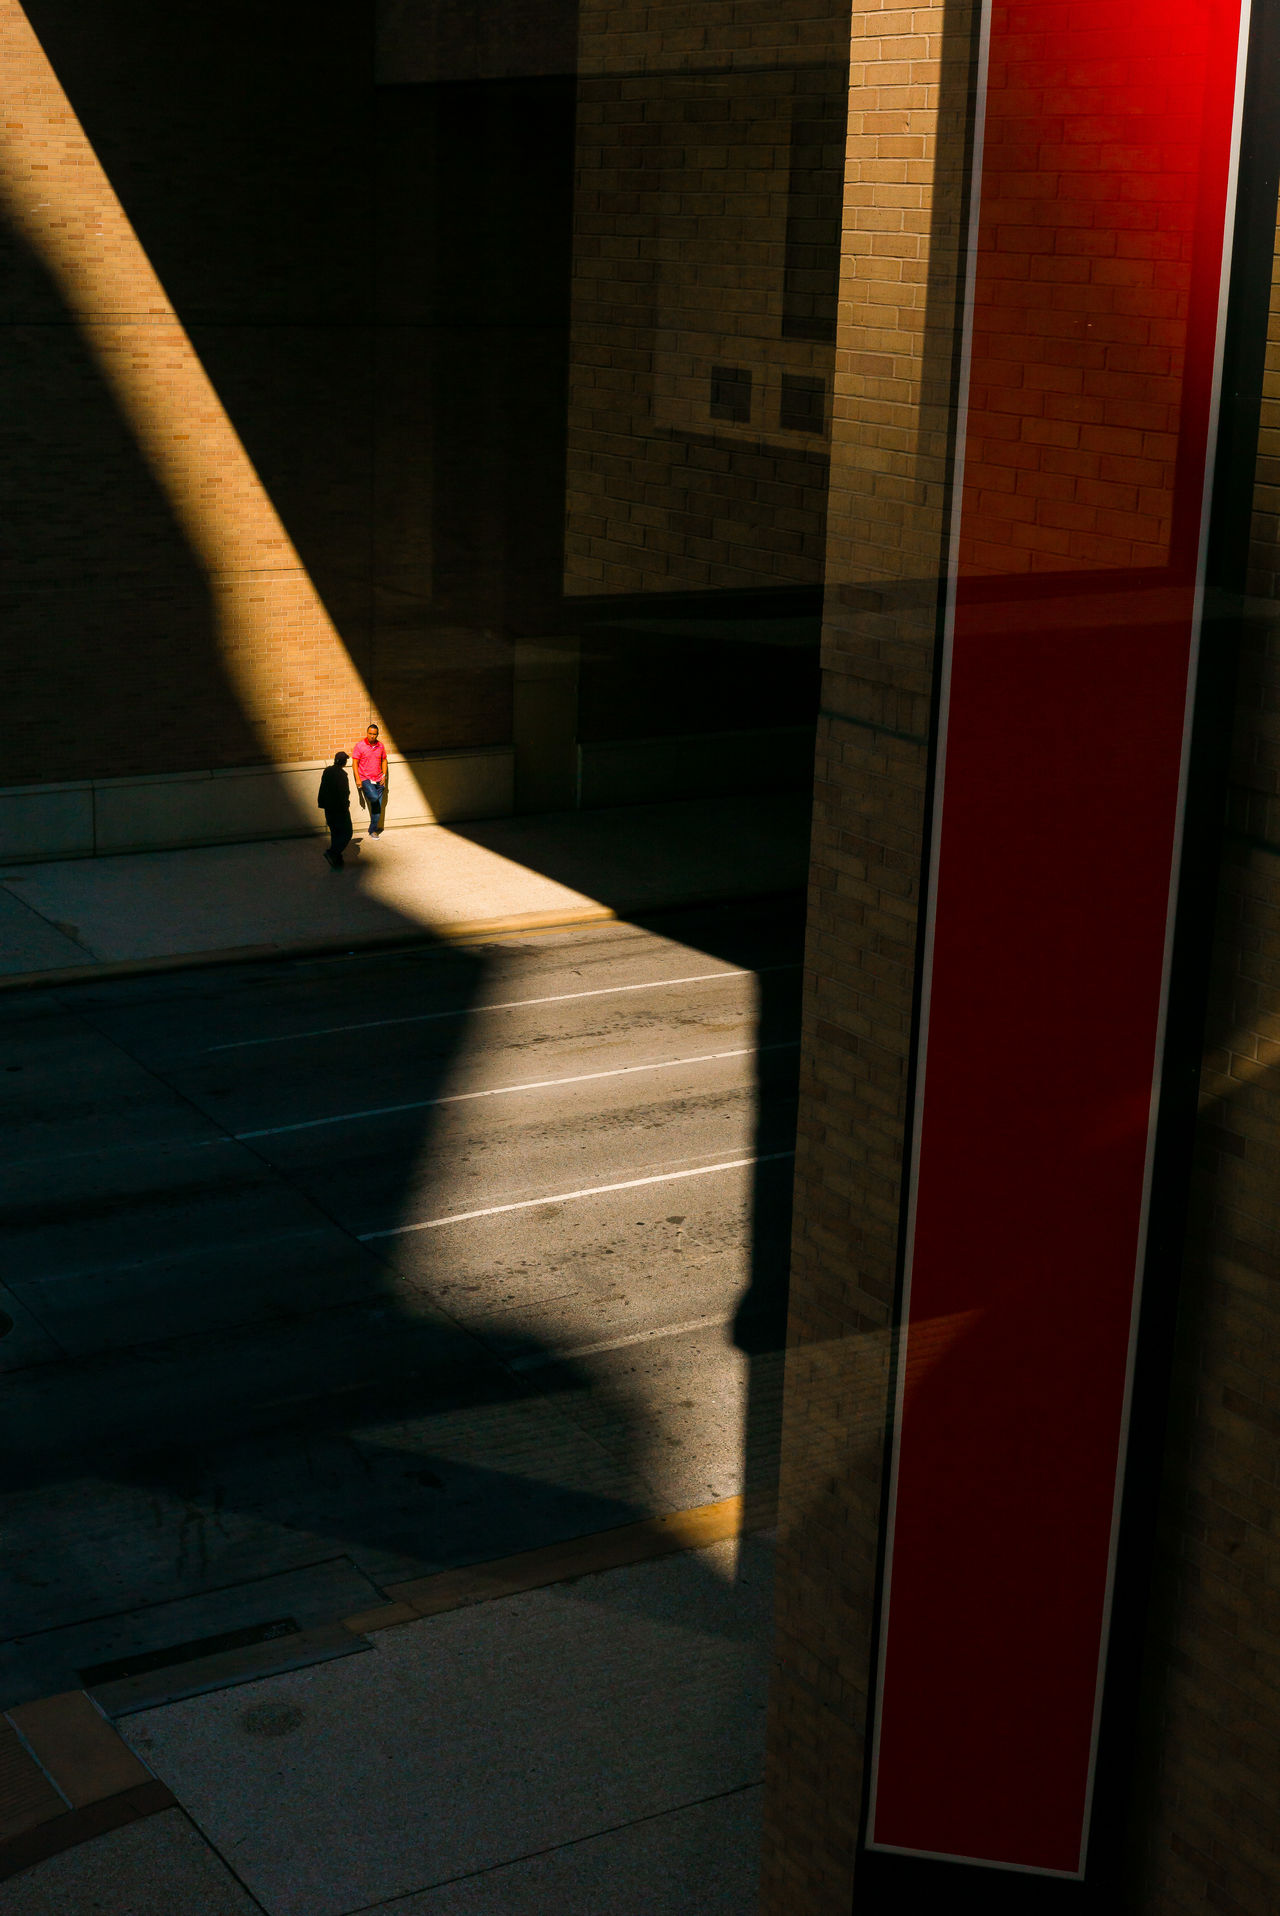 shadow, sunlight, architecture, real people, built structure